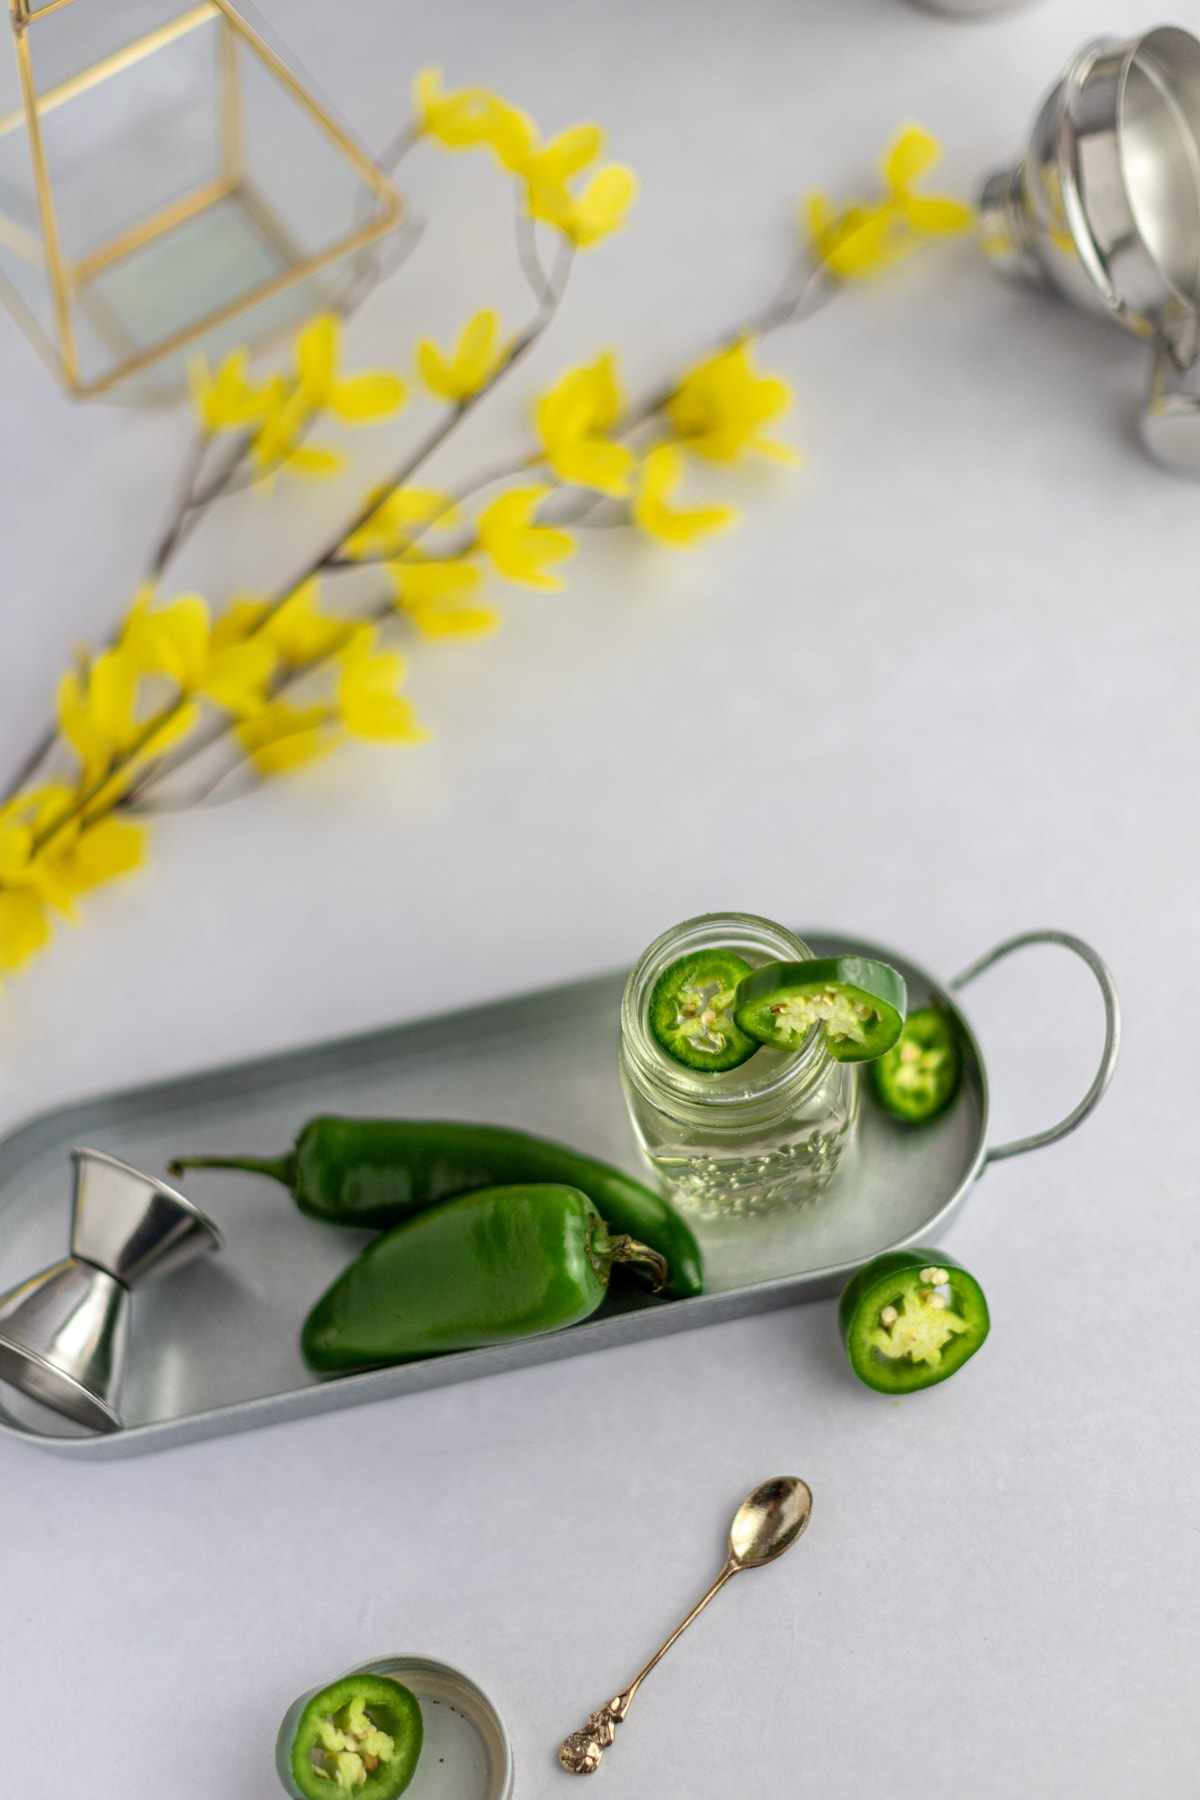 Overhead photo of a jar of syrup, surrounded by jalapeños, a gold spoon, a metal jigger and yellow flowers.